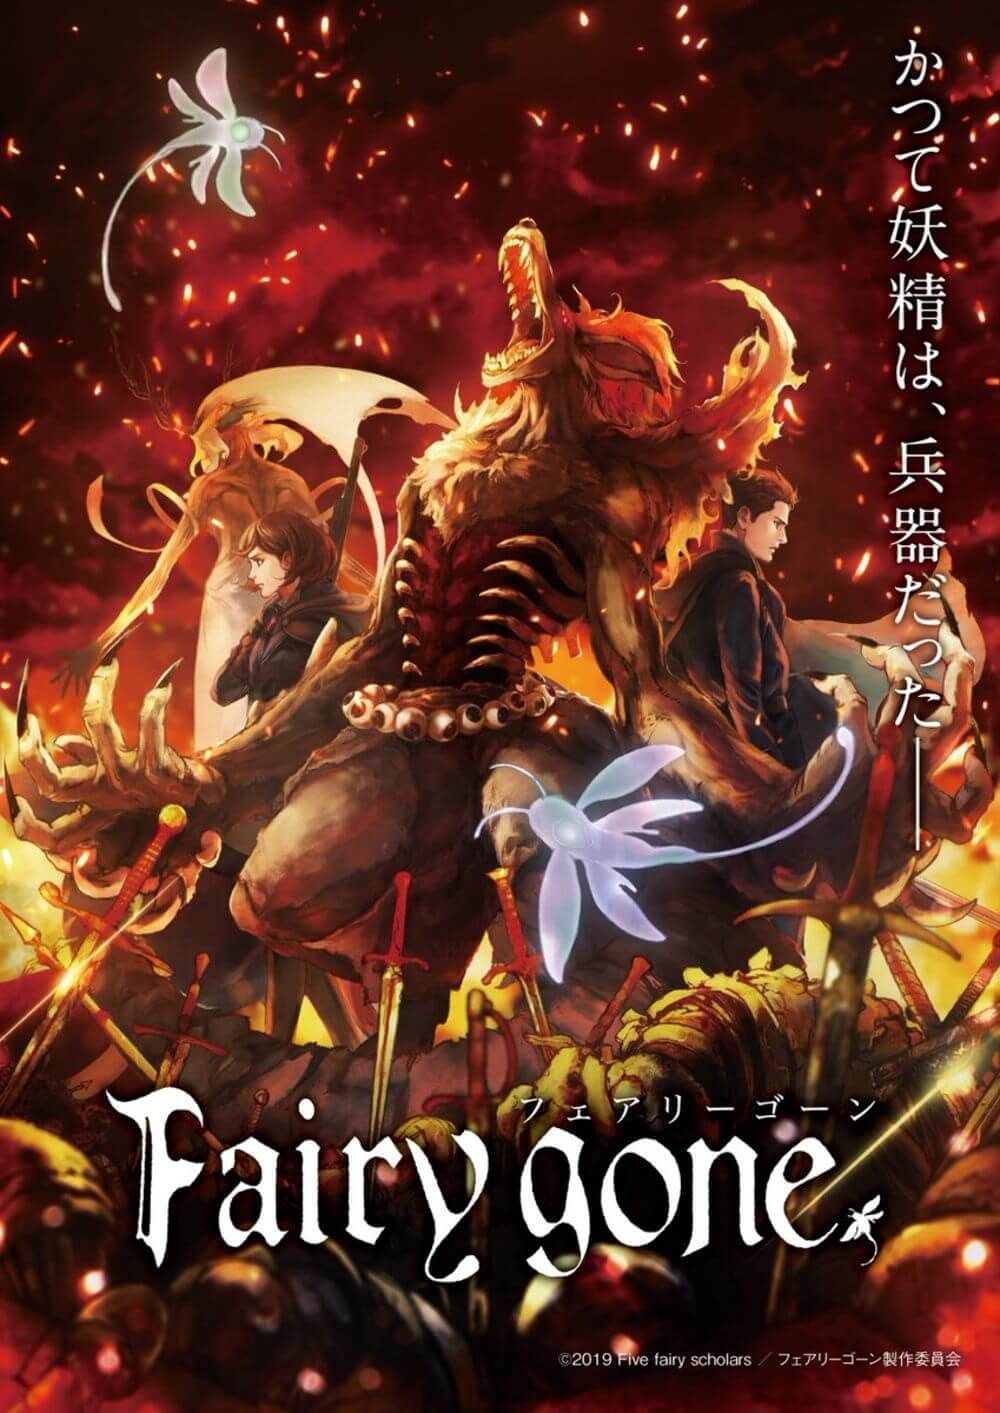 fairy-gone-anime-poster-01